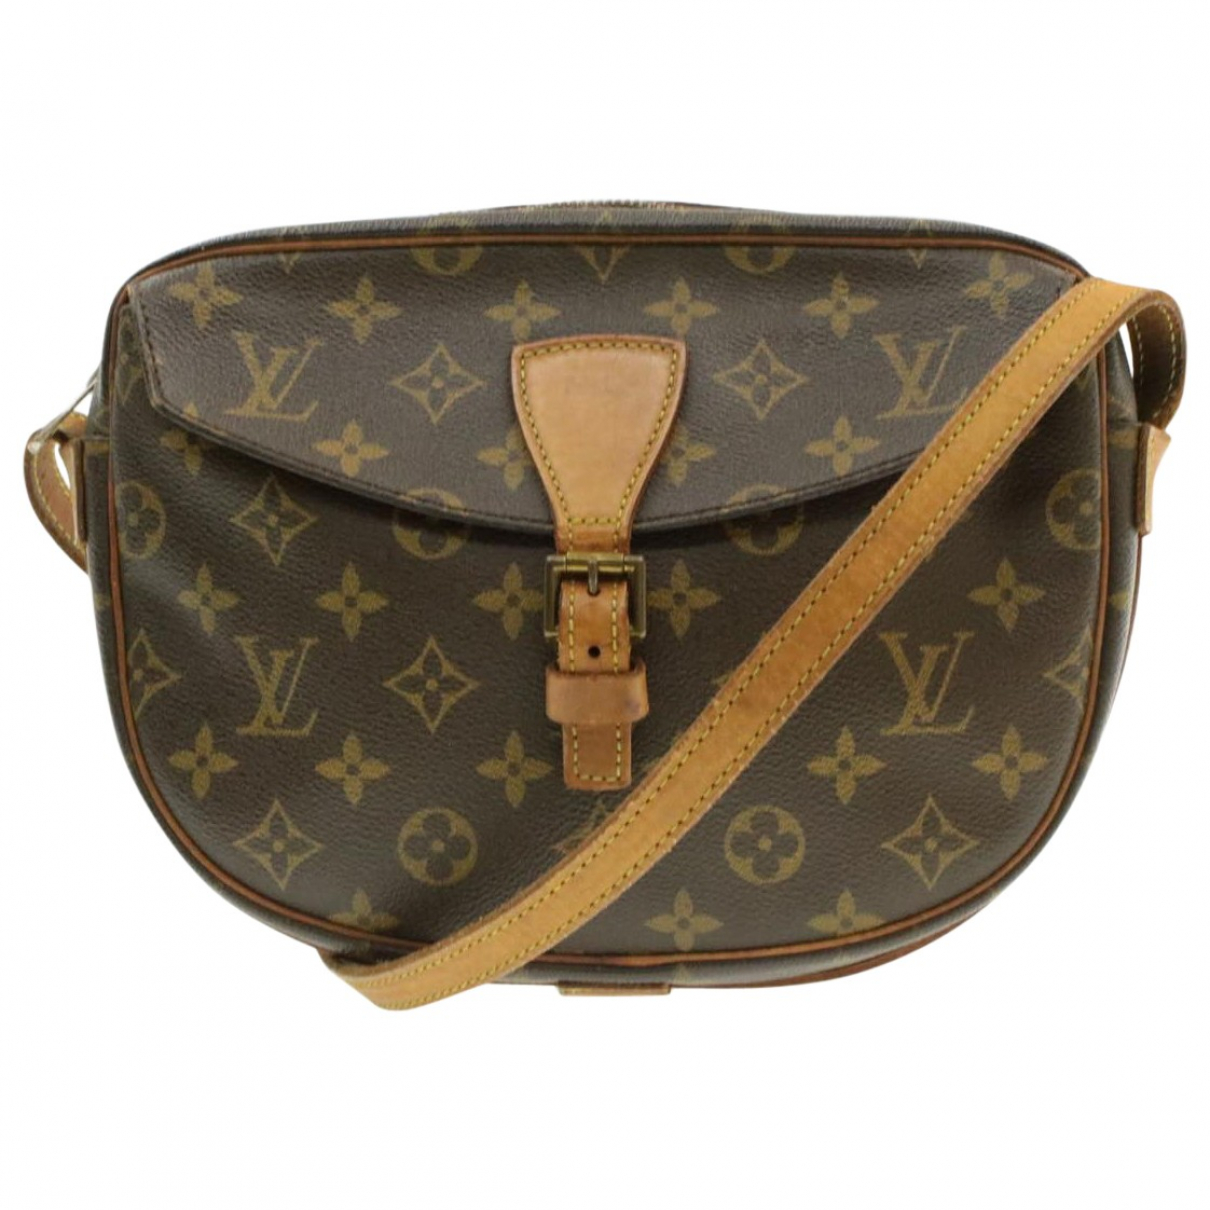 Louis Vuitton Jeune fille  Handtasche in  Braun Leinen